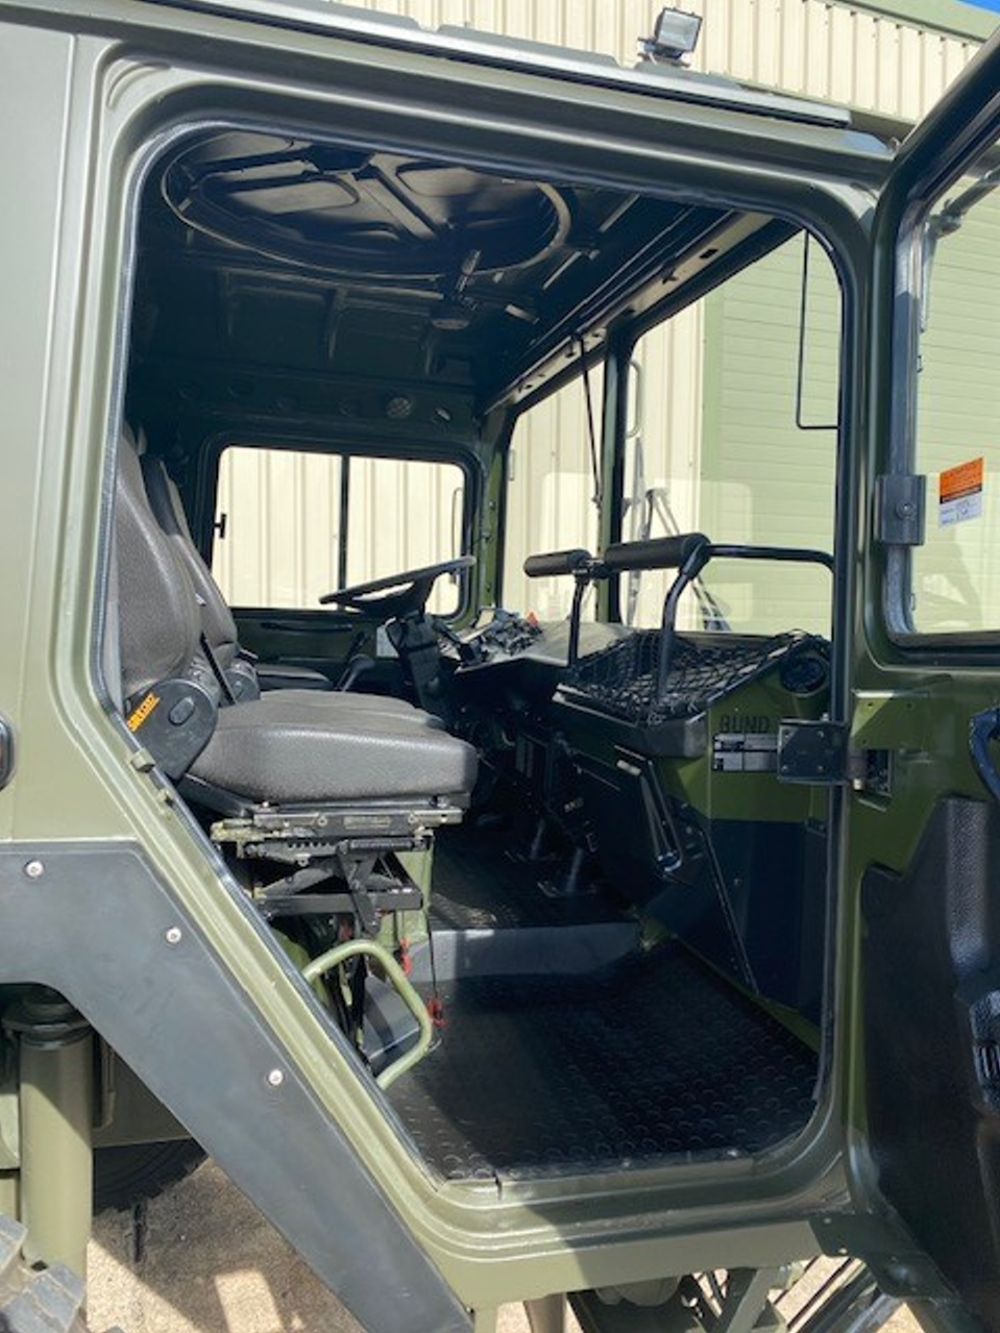 MAN CAT A1 6x6 LHD Chassis Cab Trucks  military for sale